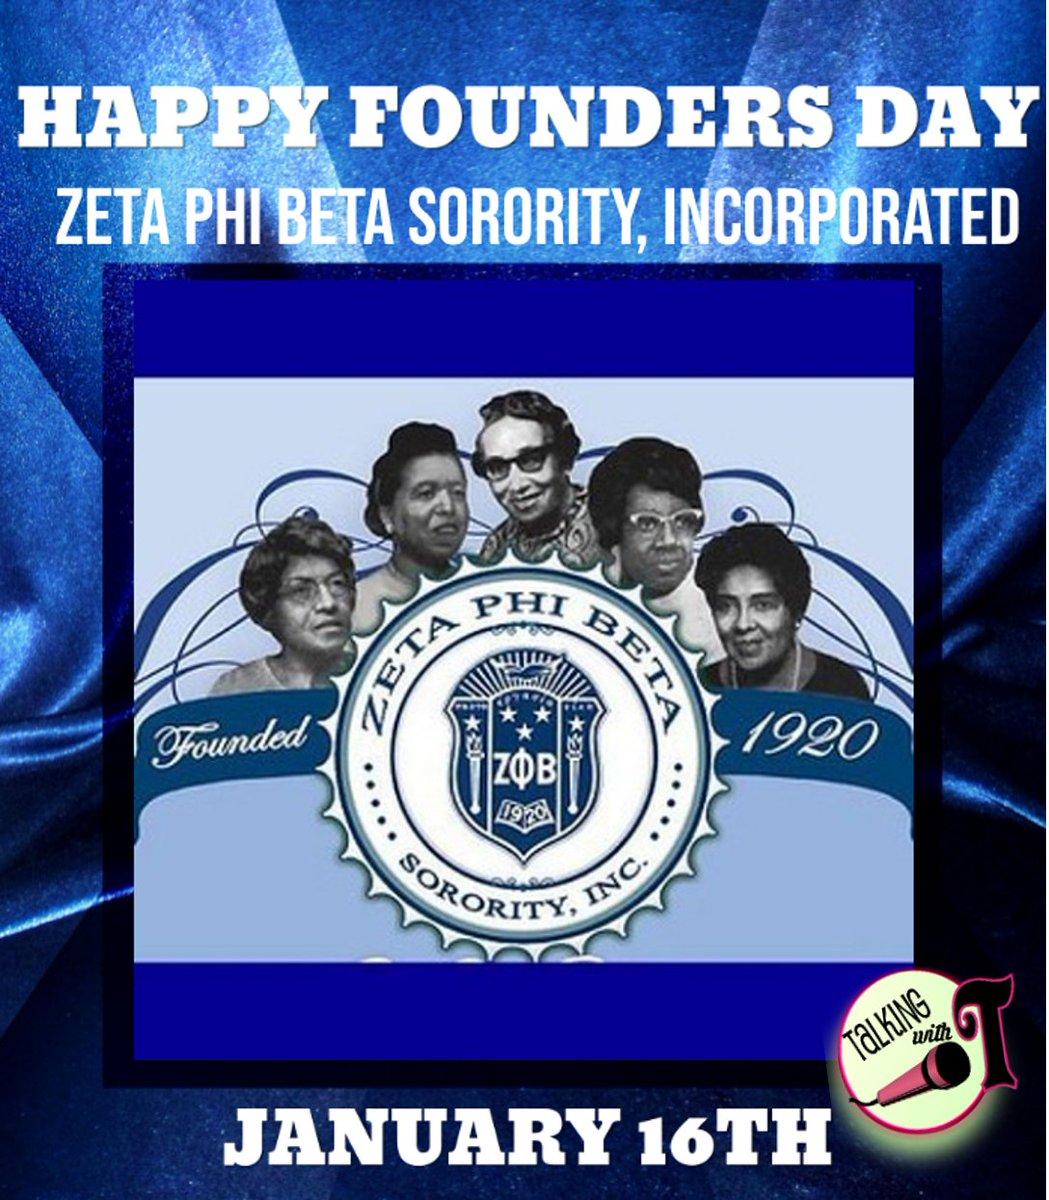 Happy Founders Day to the ladies of Zeta Phi Beta